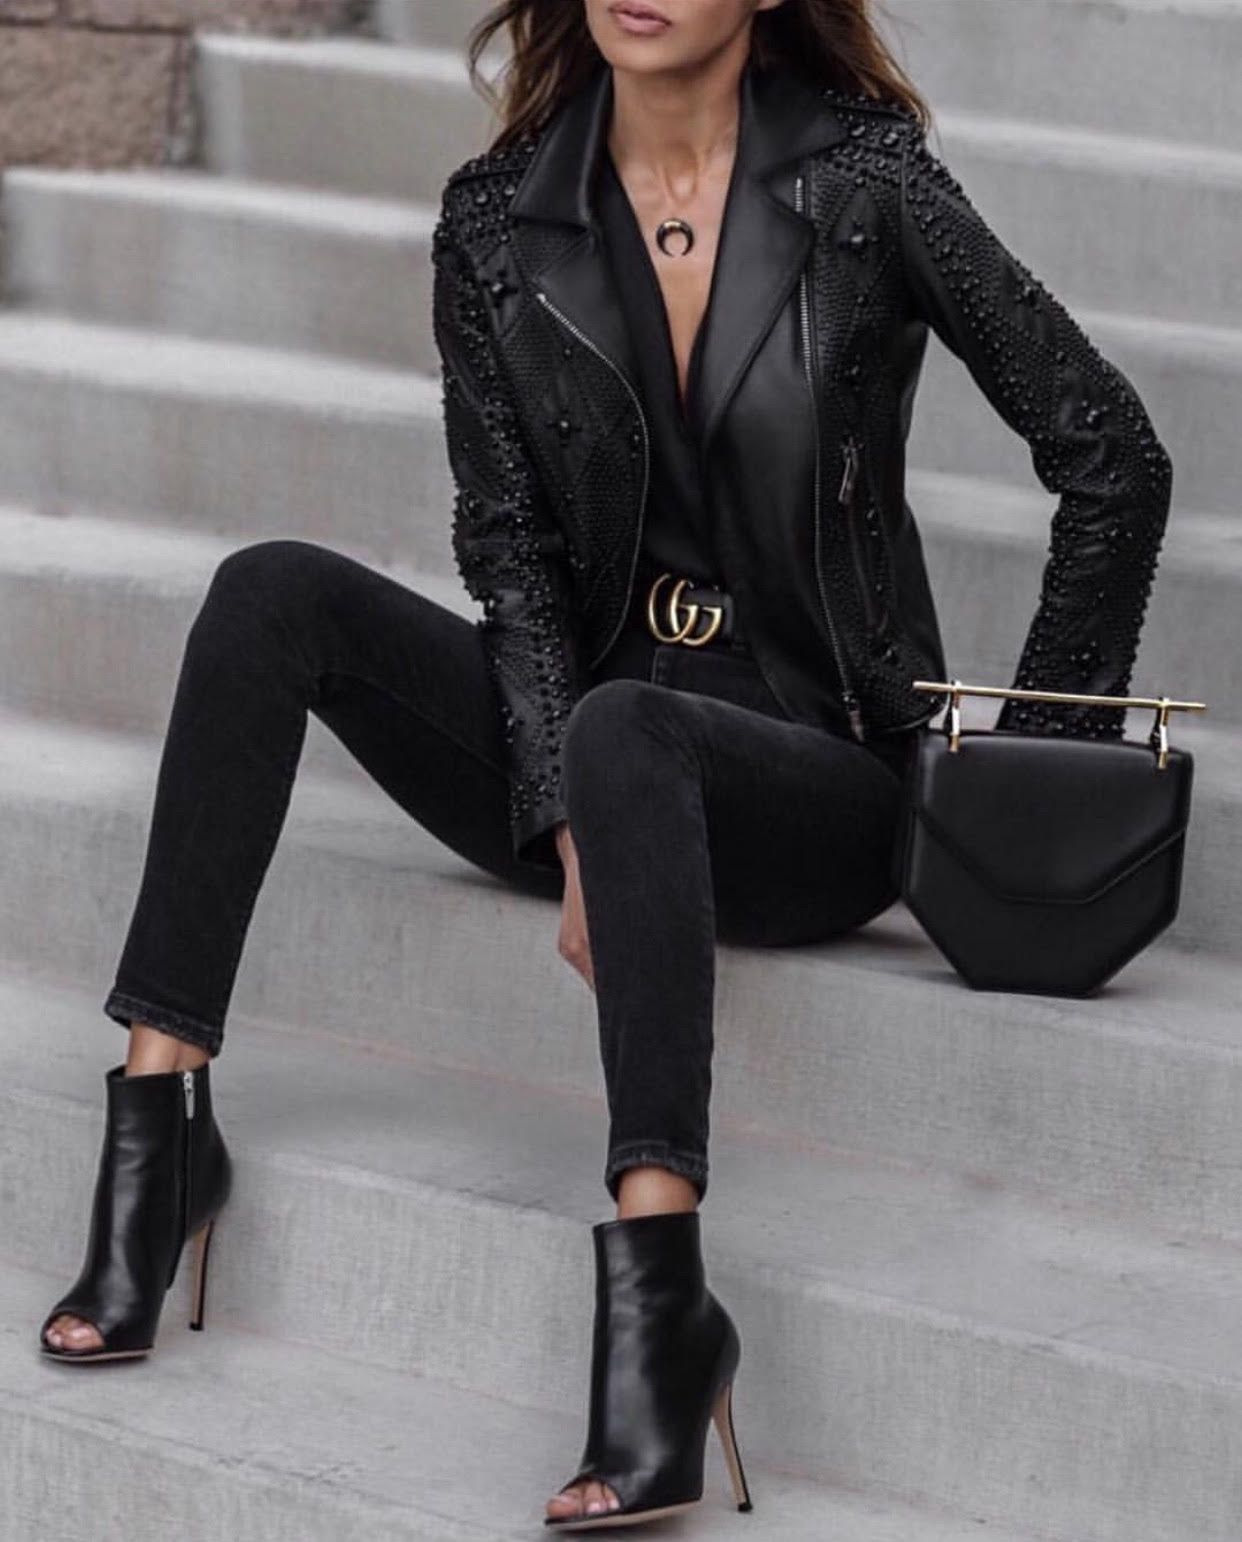 All-Black Outfits to Copy for Fall